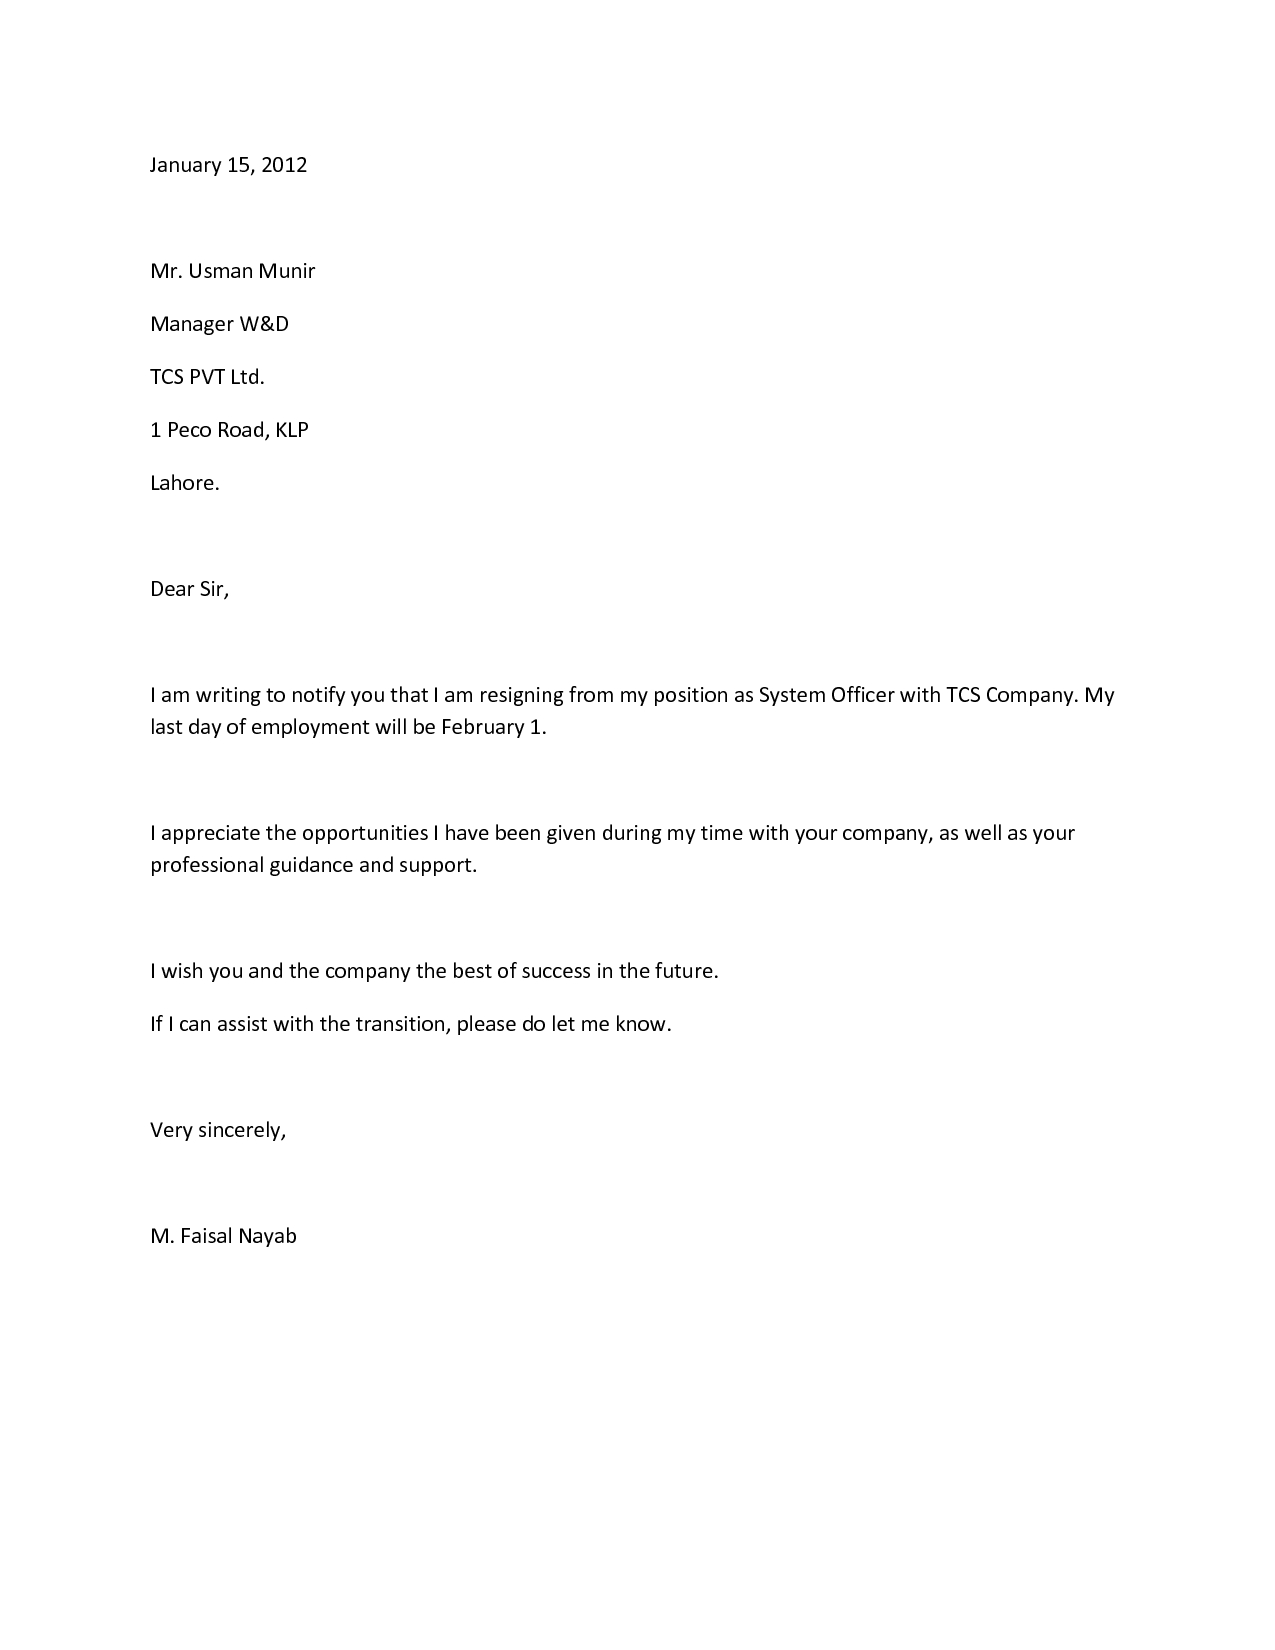 7 Day Notice Letter Construction Template - How to Write A Proper Resignation Letter Images